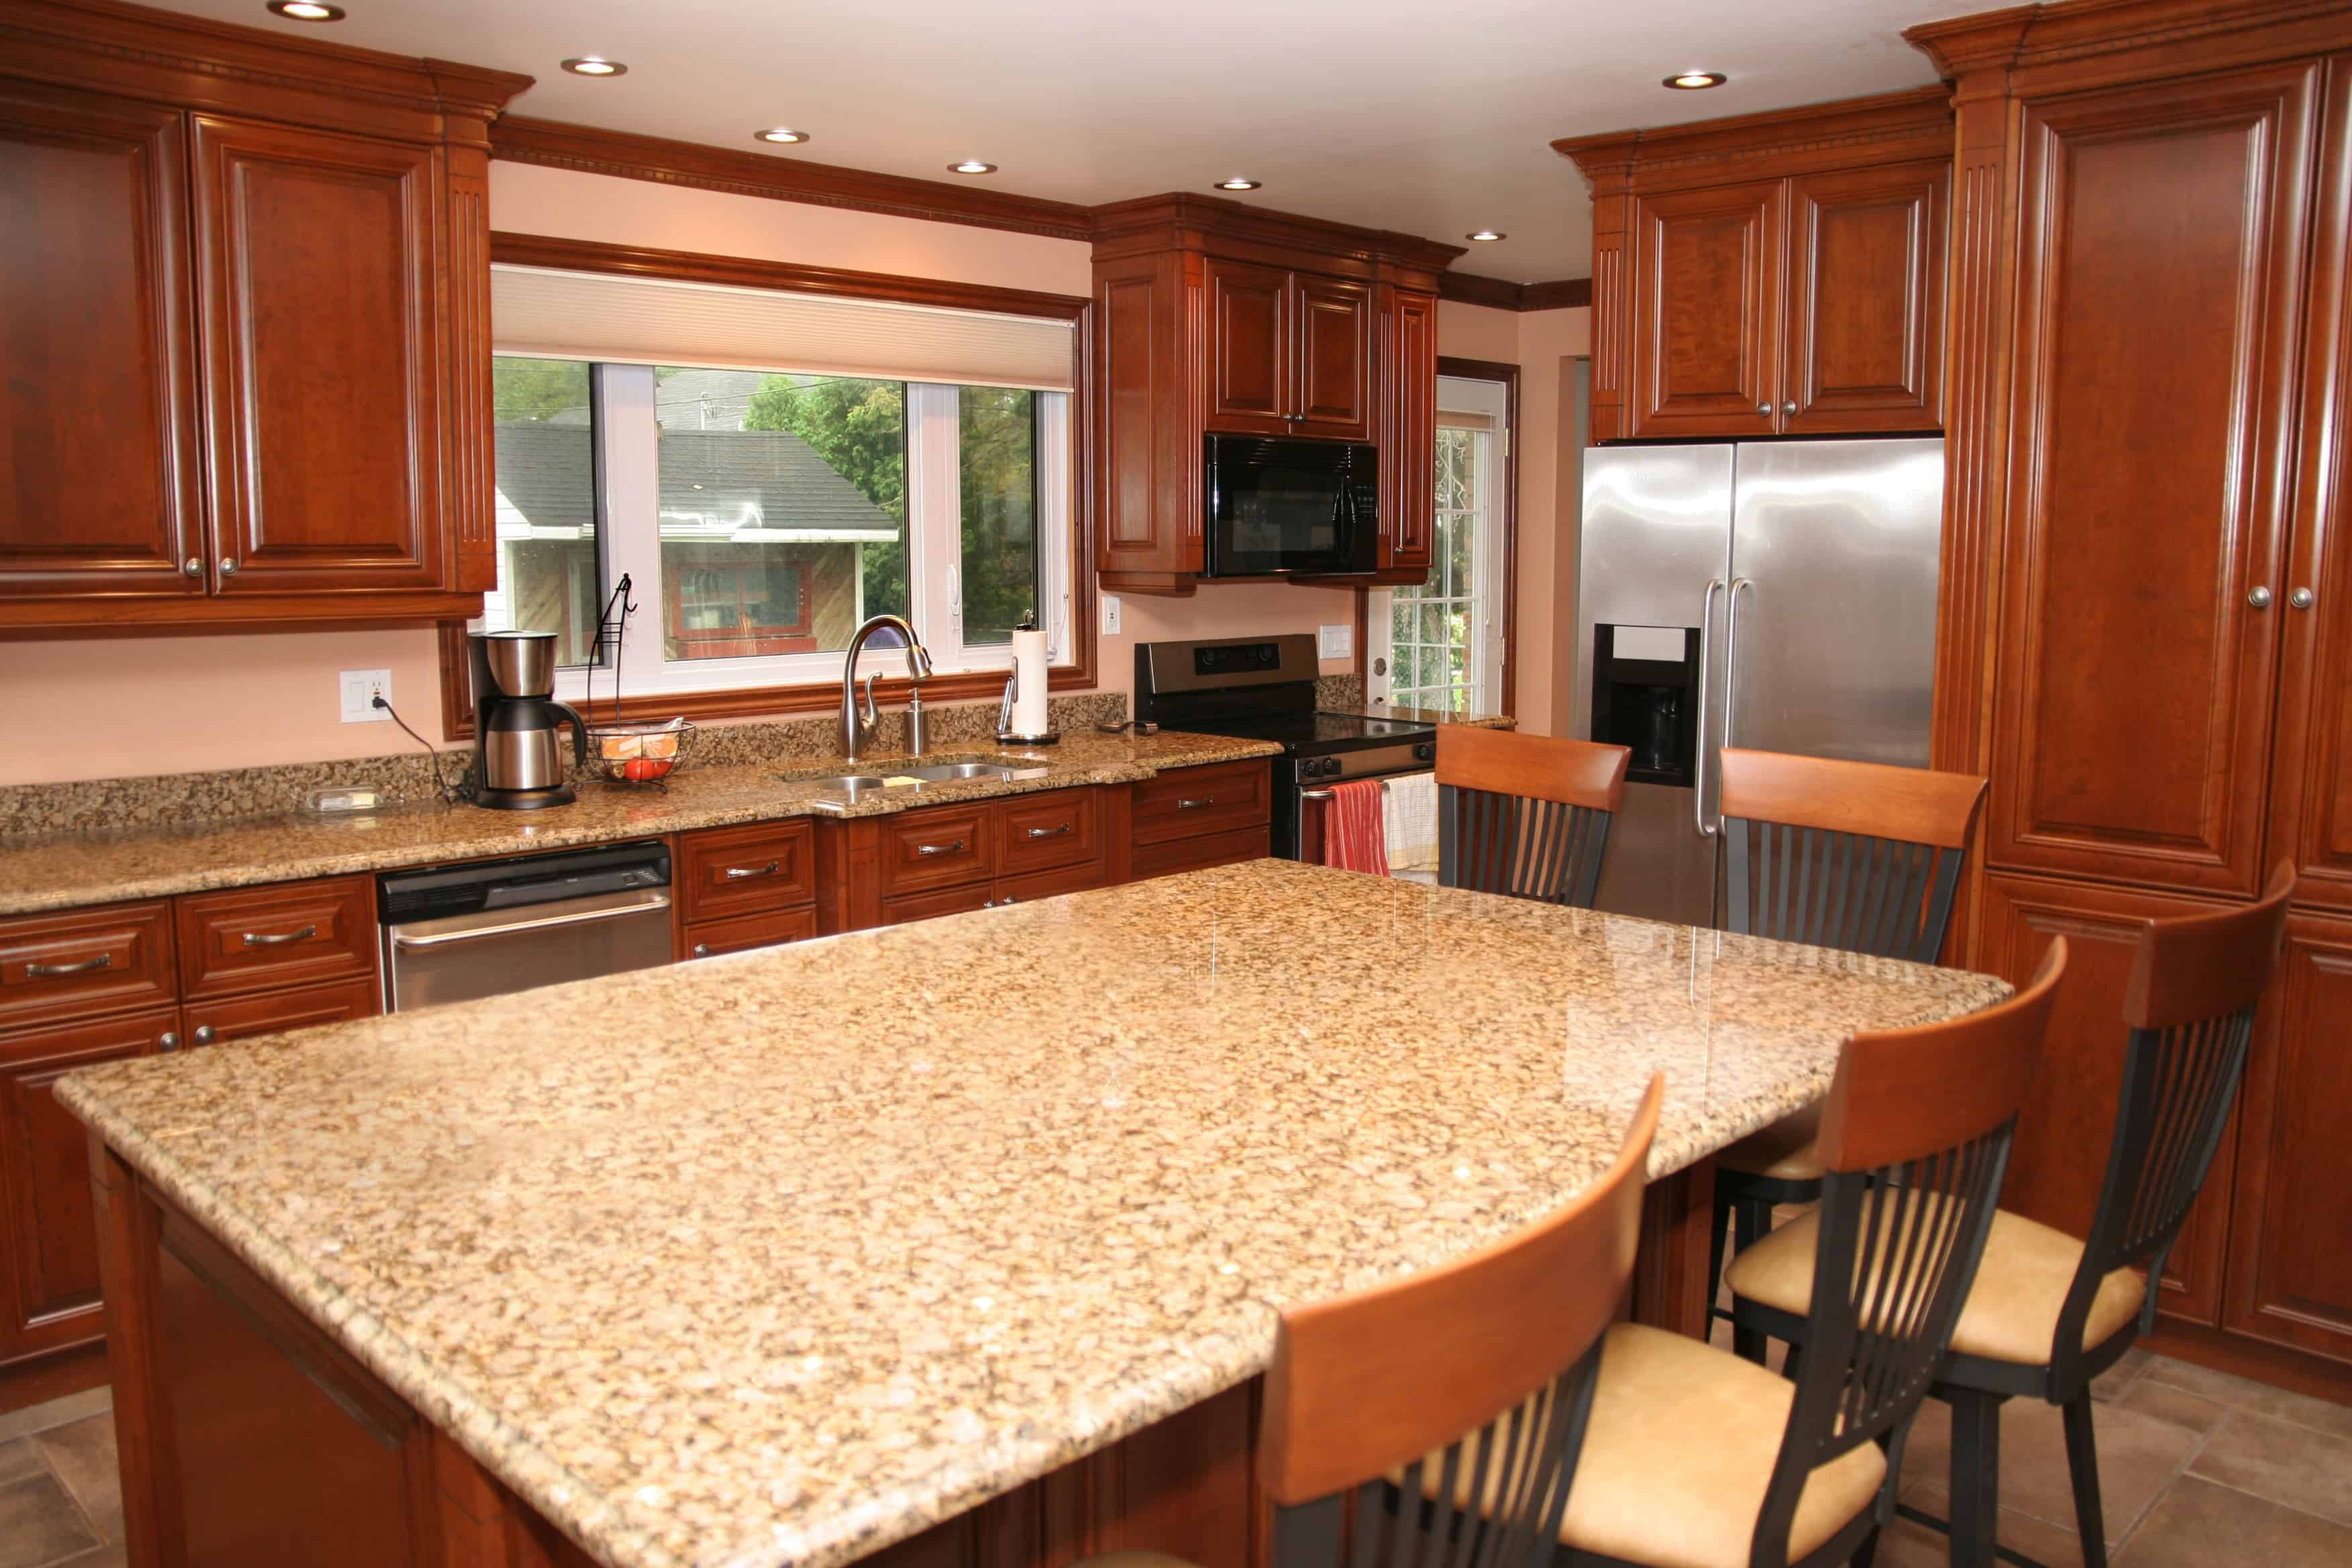 Secrets To Maintaining 10 High End Finishes In Your Home Clean My Space